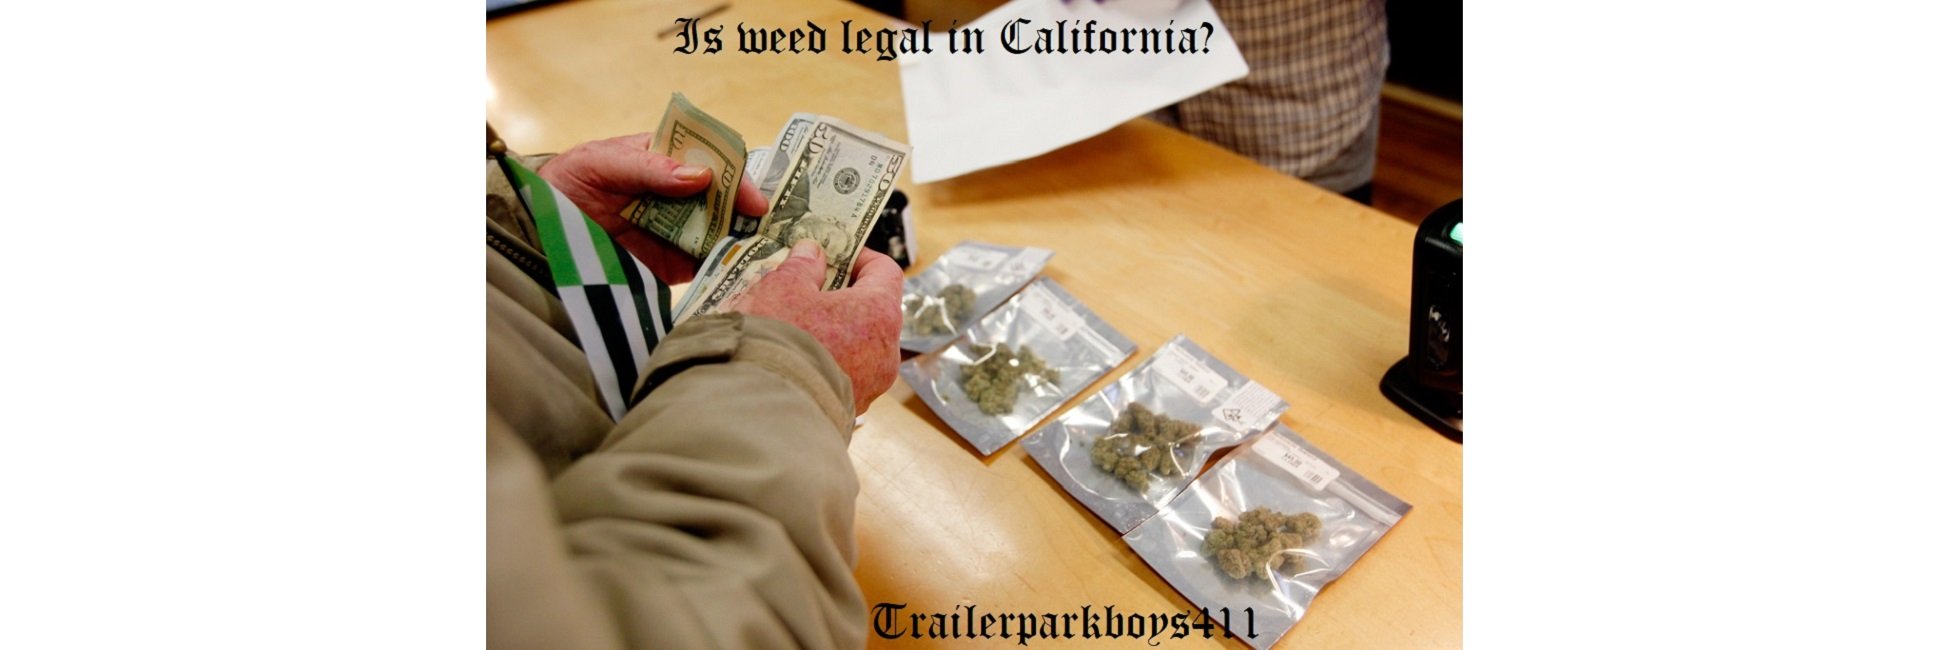 Is weed legal in California